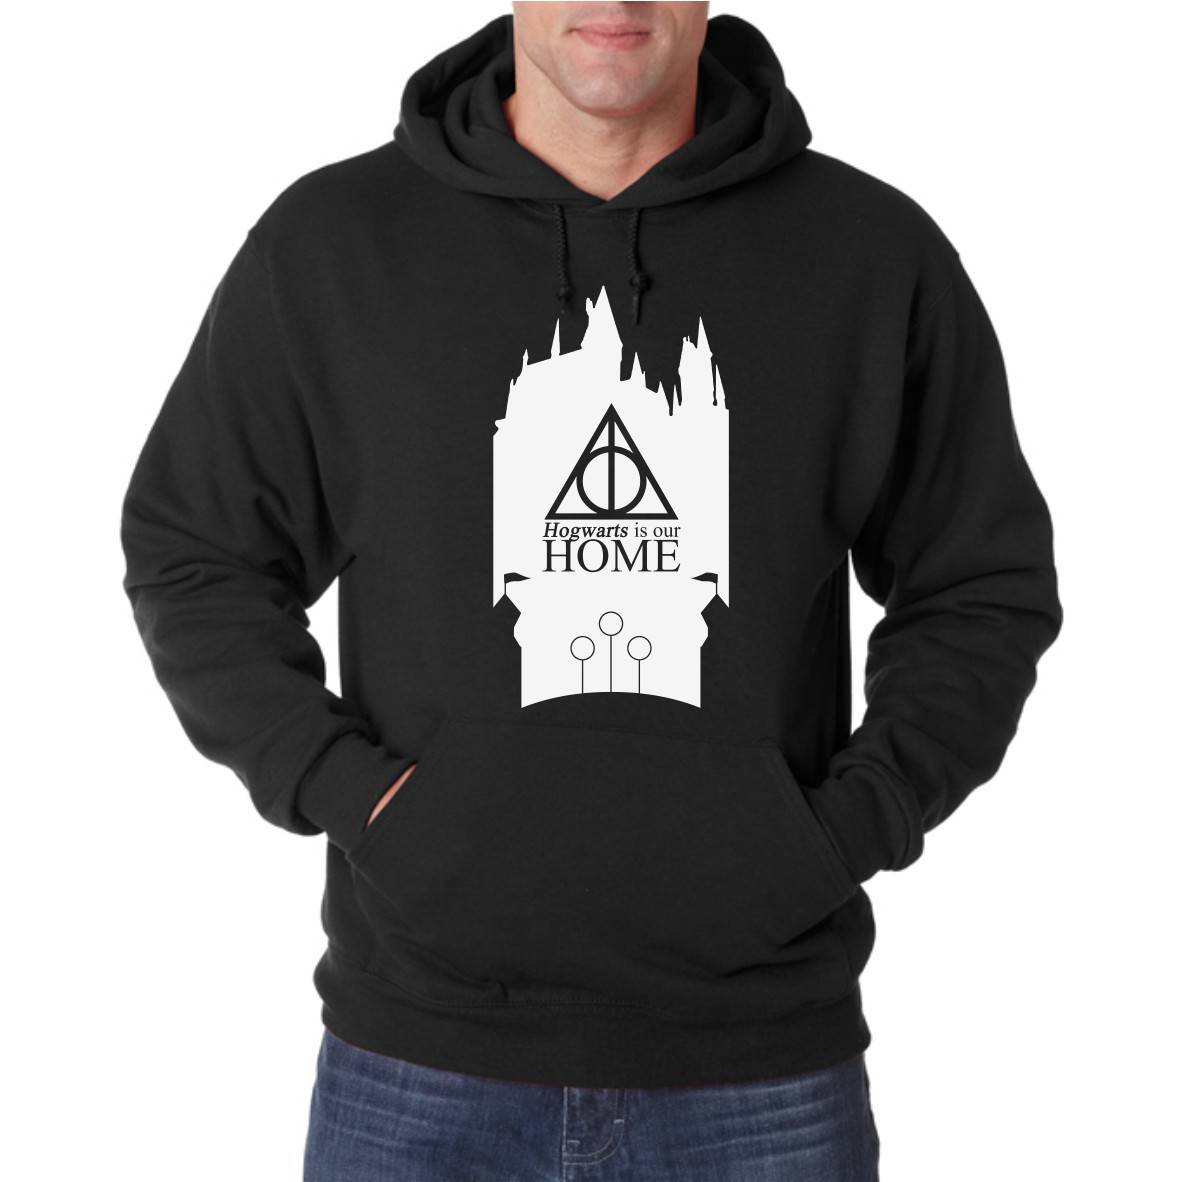 OUR HOME UNISEX HOODED